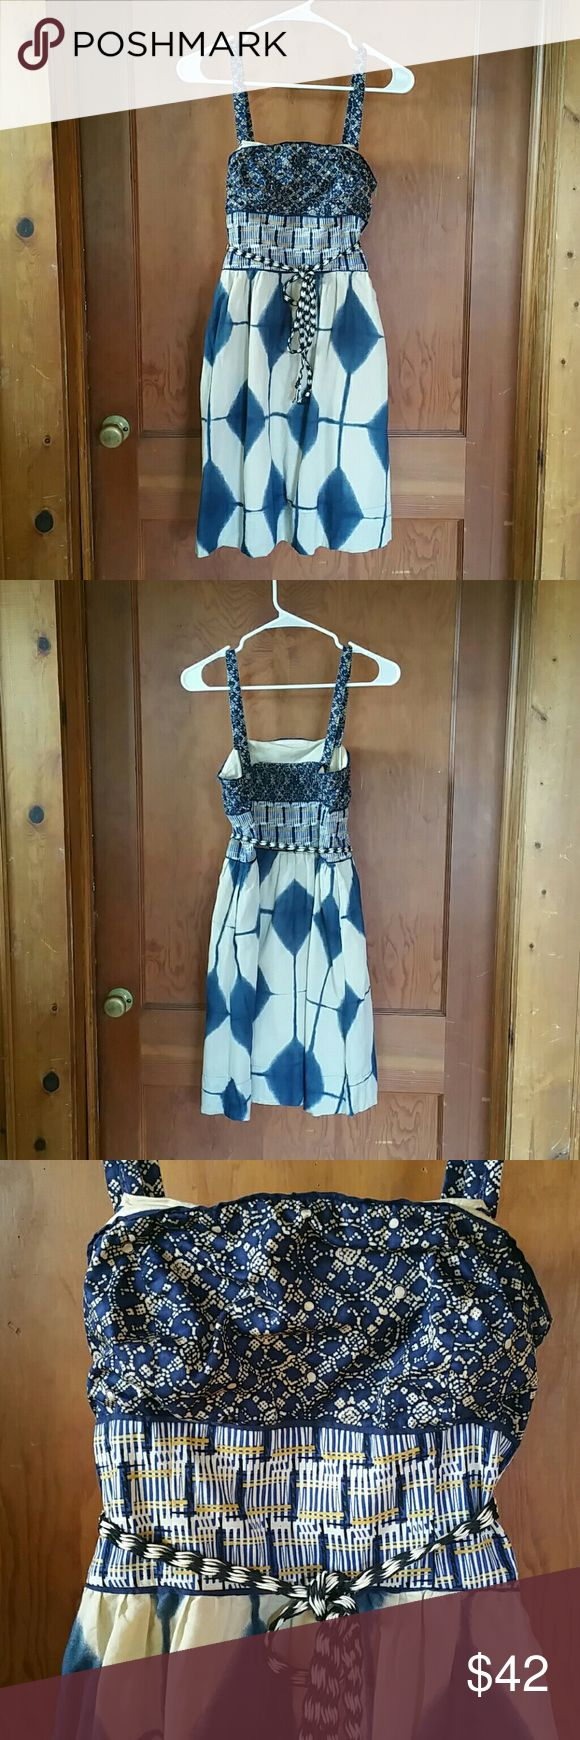 """Anthropologie Maeve Dress Size 2 Tan, blue and yellow dress with hidden side pockets, hidden side zipper, removable straps and smocked back. Great condition but has two super small stains on the right side by the pocket. Super hard to see unless super close. Bust 15"""", waist 13.5"""" and length 28"""" from shoulder to bottom.   NO TRADES.  NO PAYPAL. Anthropologie Dresses"""